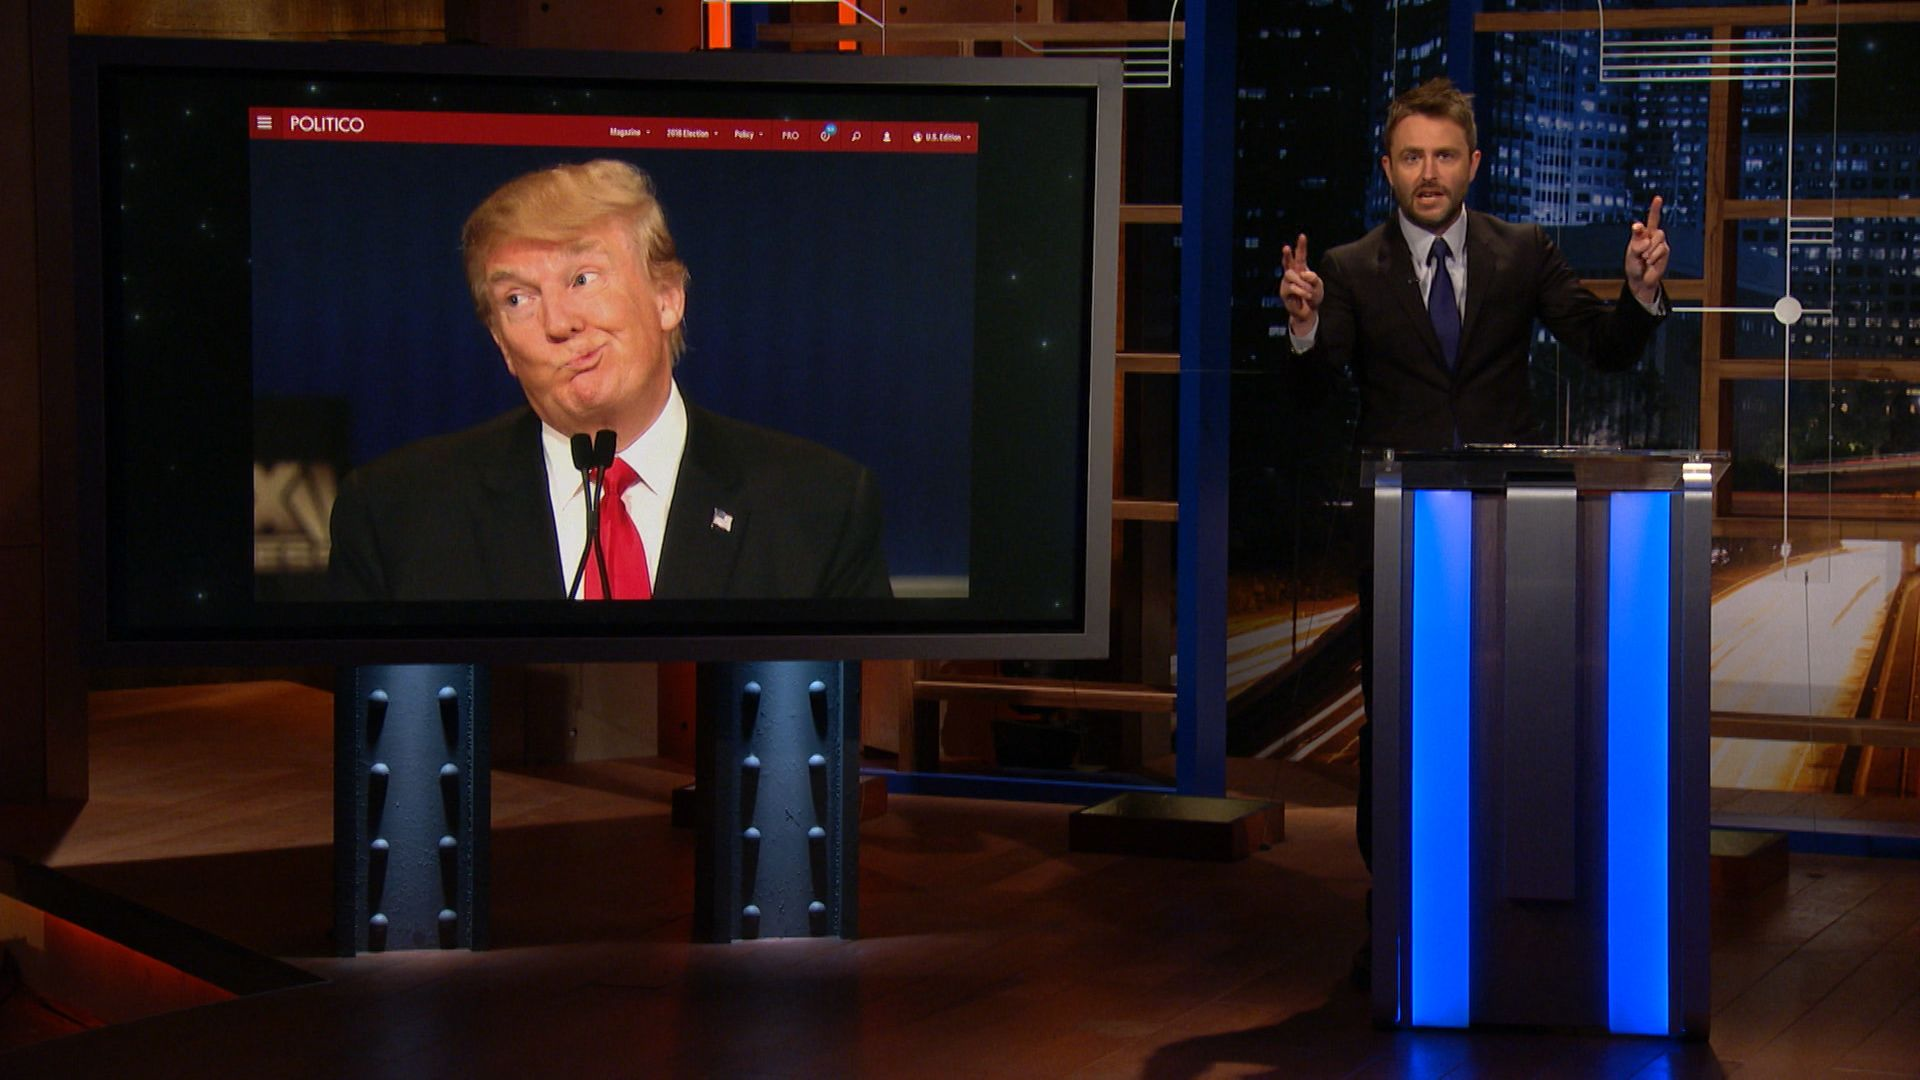 Extended - Dicknames - Donald Trump's Political Epithets - @midnight with Chris Hardwick (Video Clip)